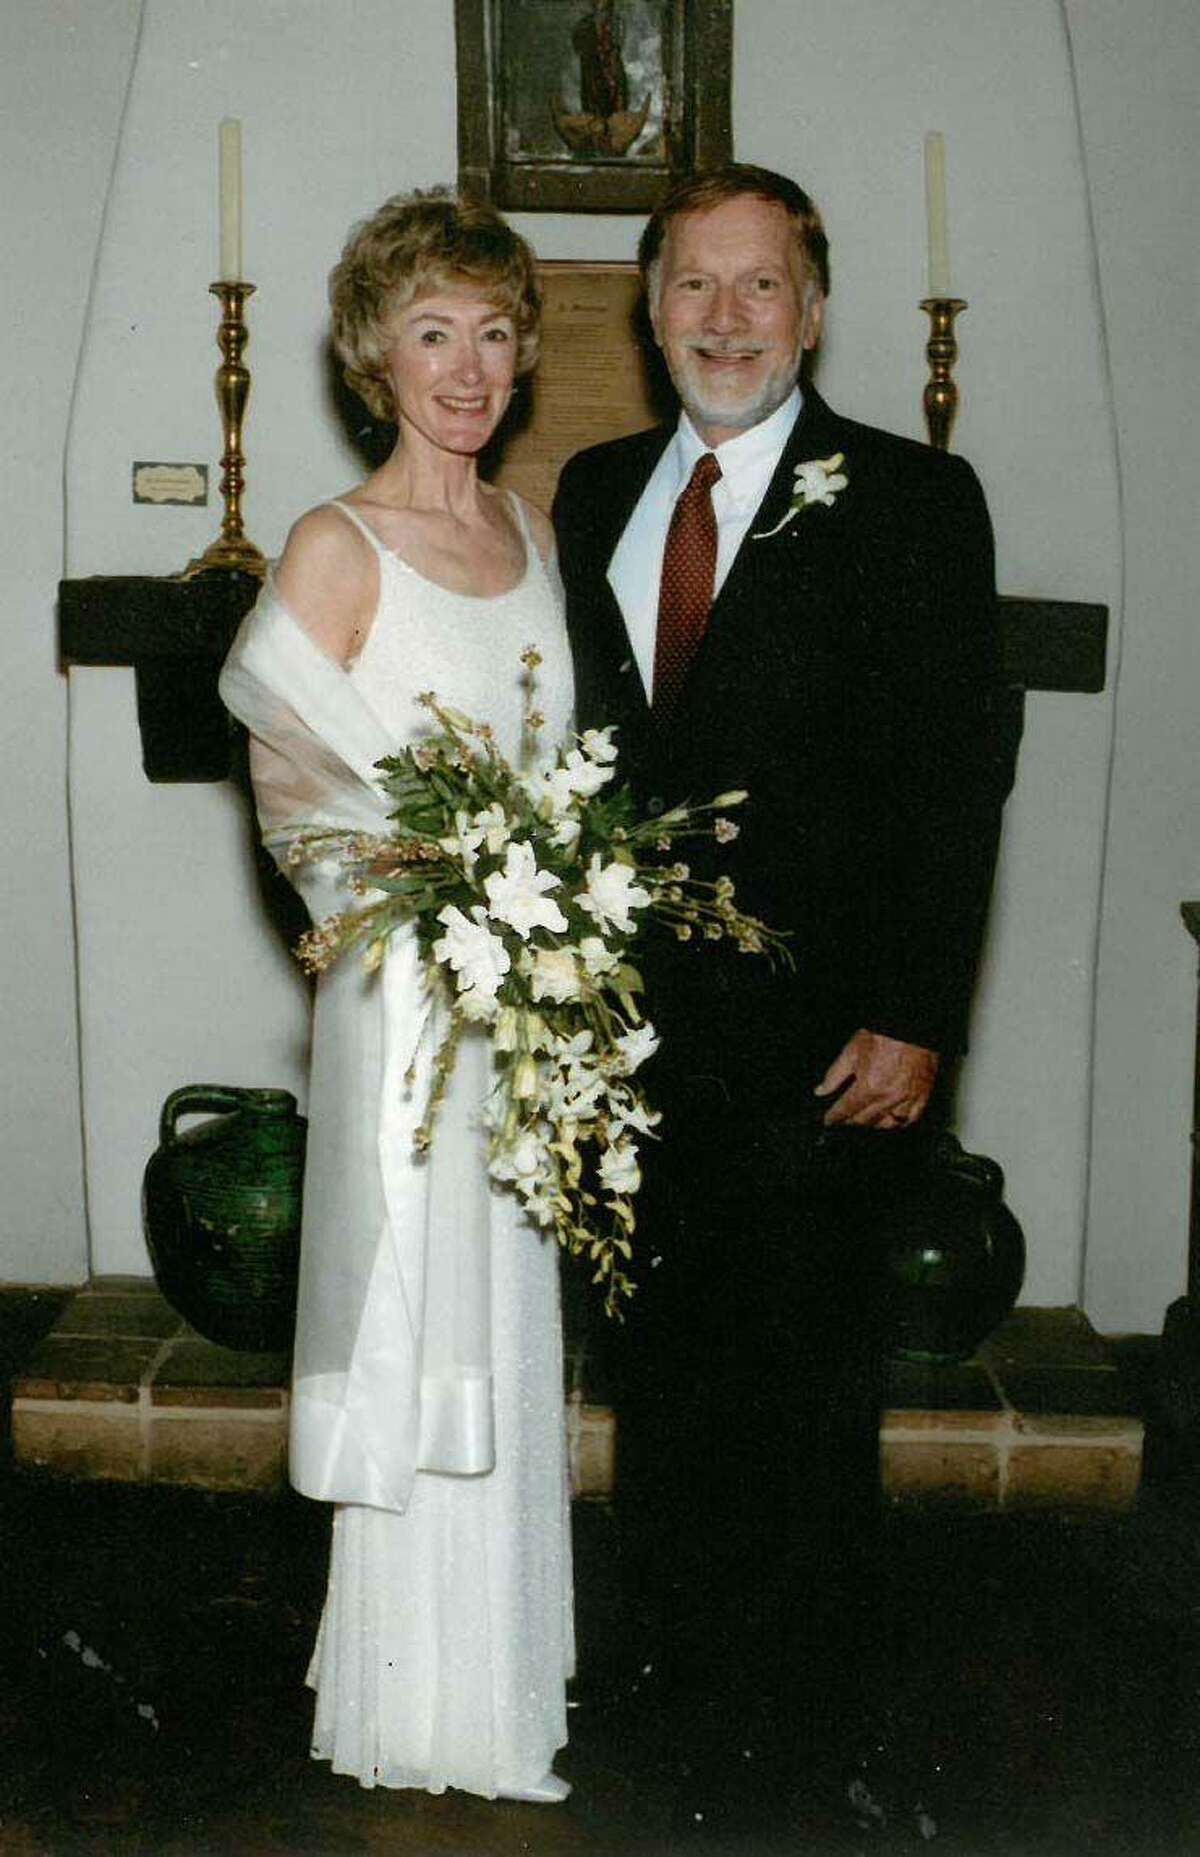 Joseph Dunwoody Jr. met Martha Tanner in February 2001. The couple married the following December.